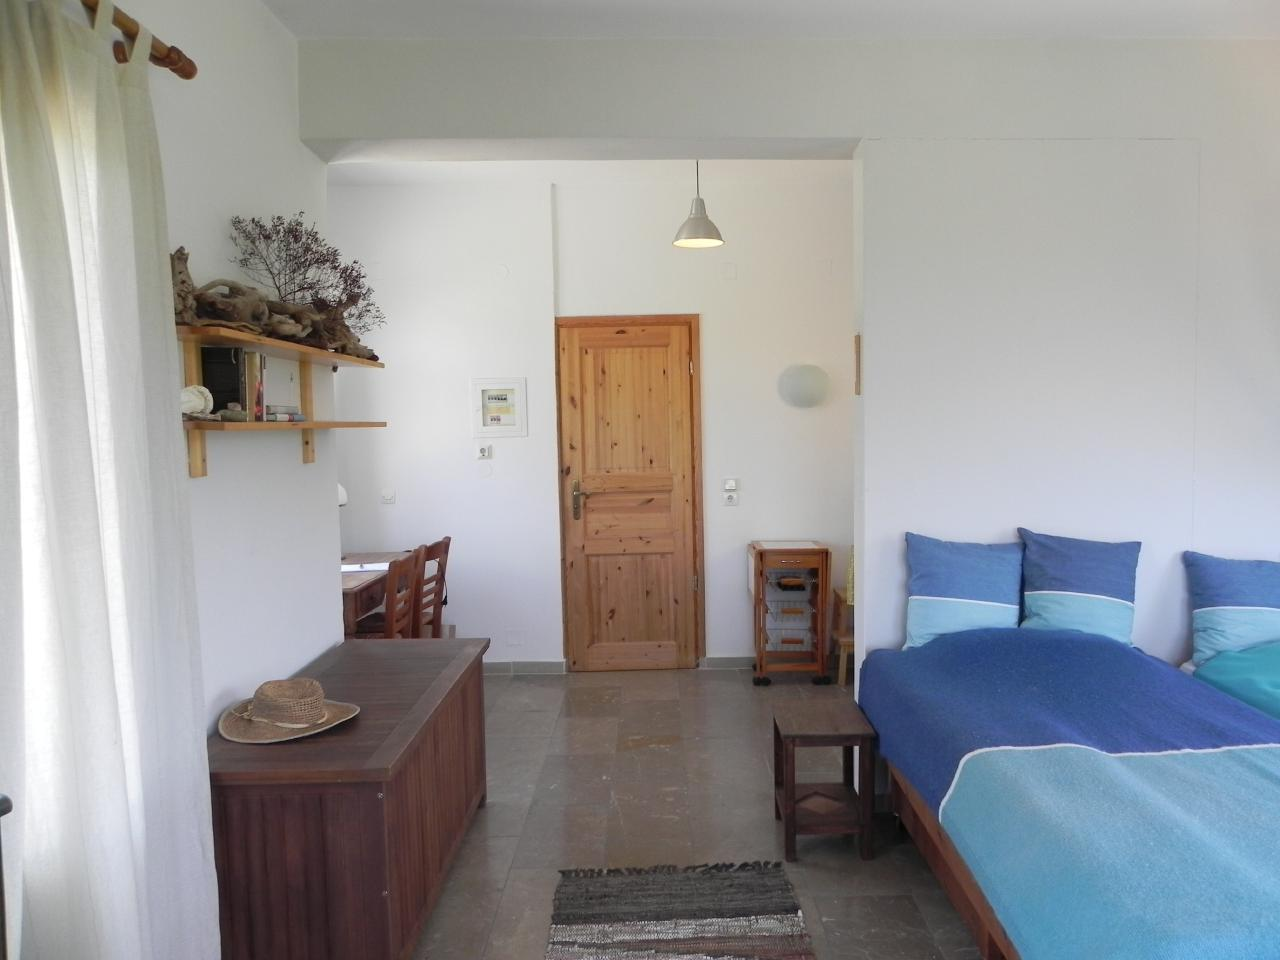 Holiday house Olive Garden - Oase der Ruhe (2167110), Vafeios, Lesbos, Aegean Islands, Greece, picture 4